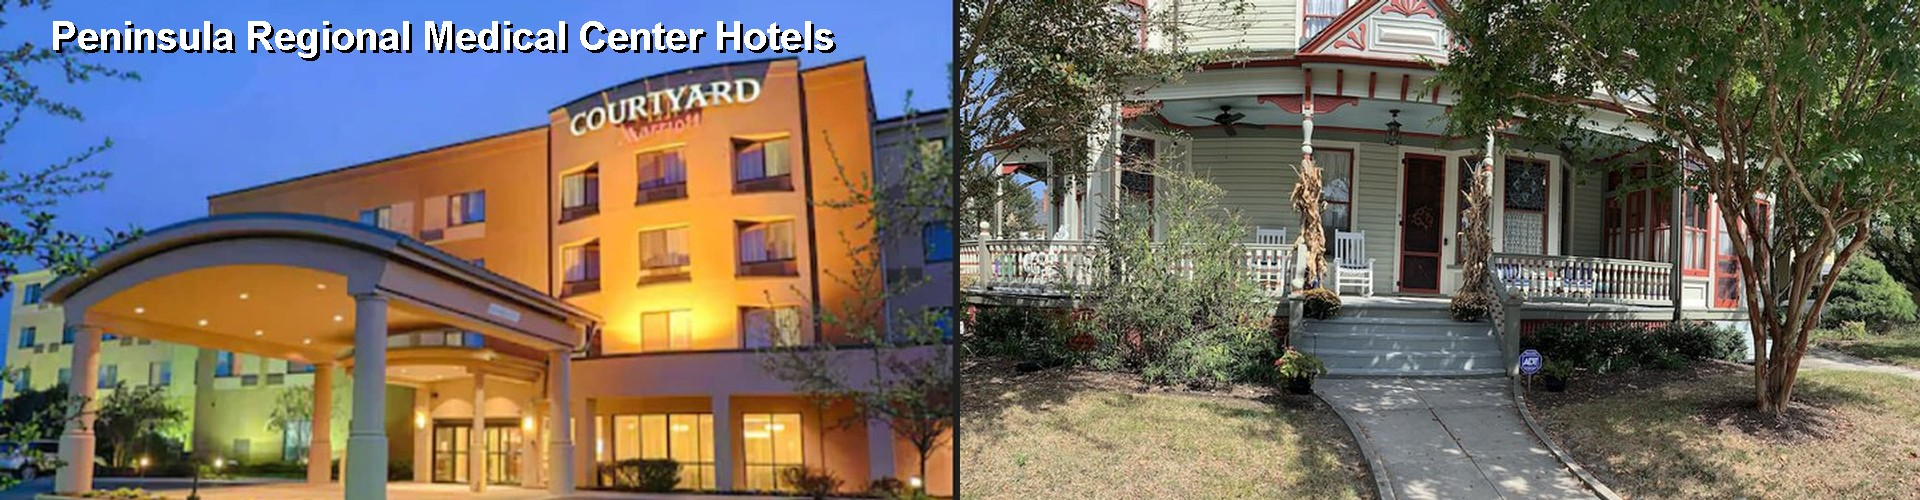 5 Best Hotels near Peninsula Regional Medical Center